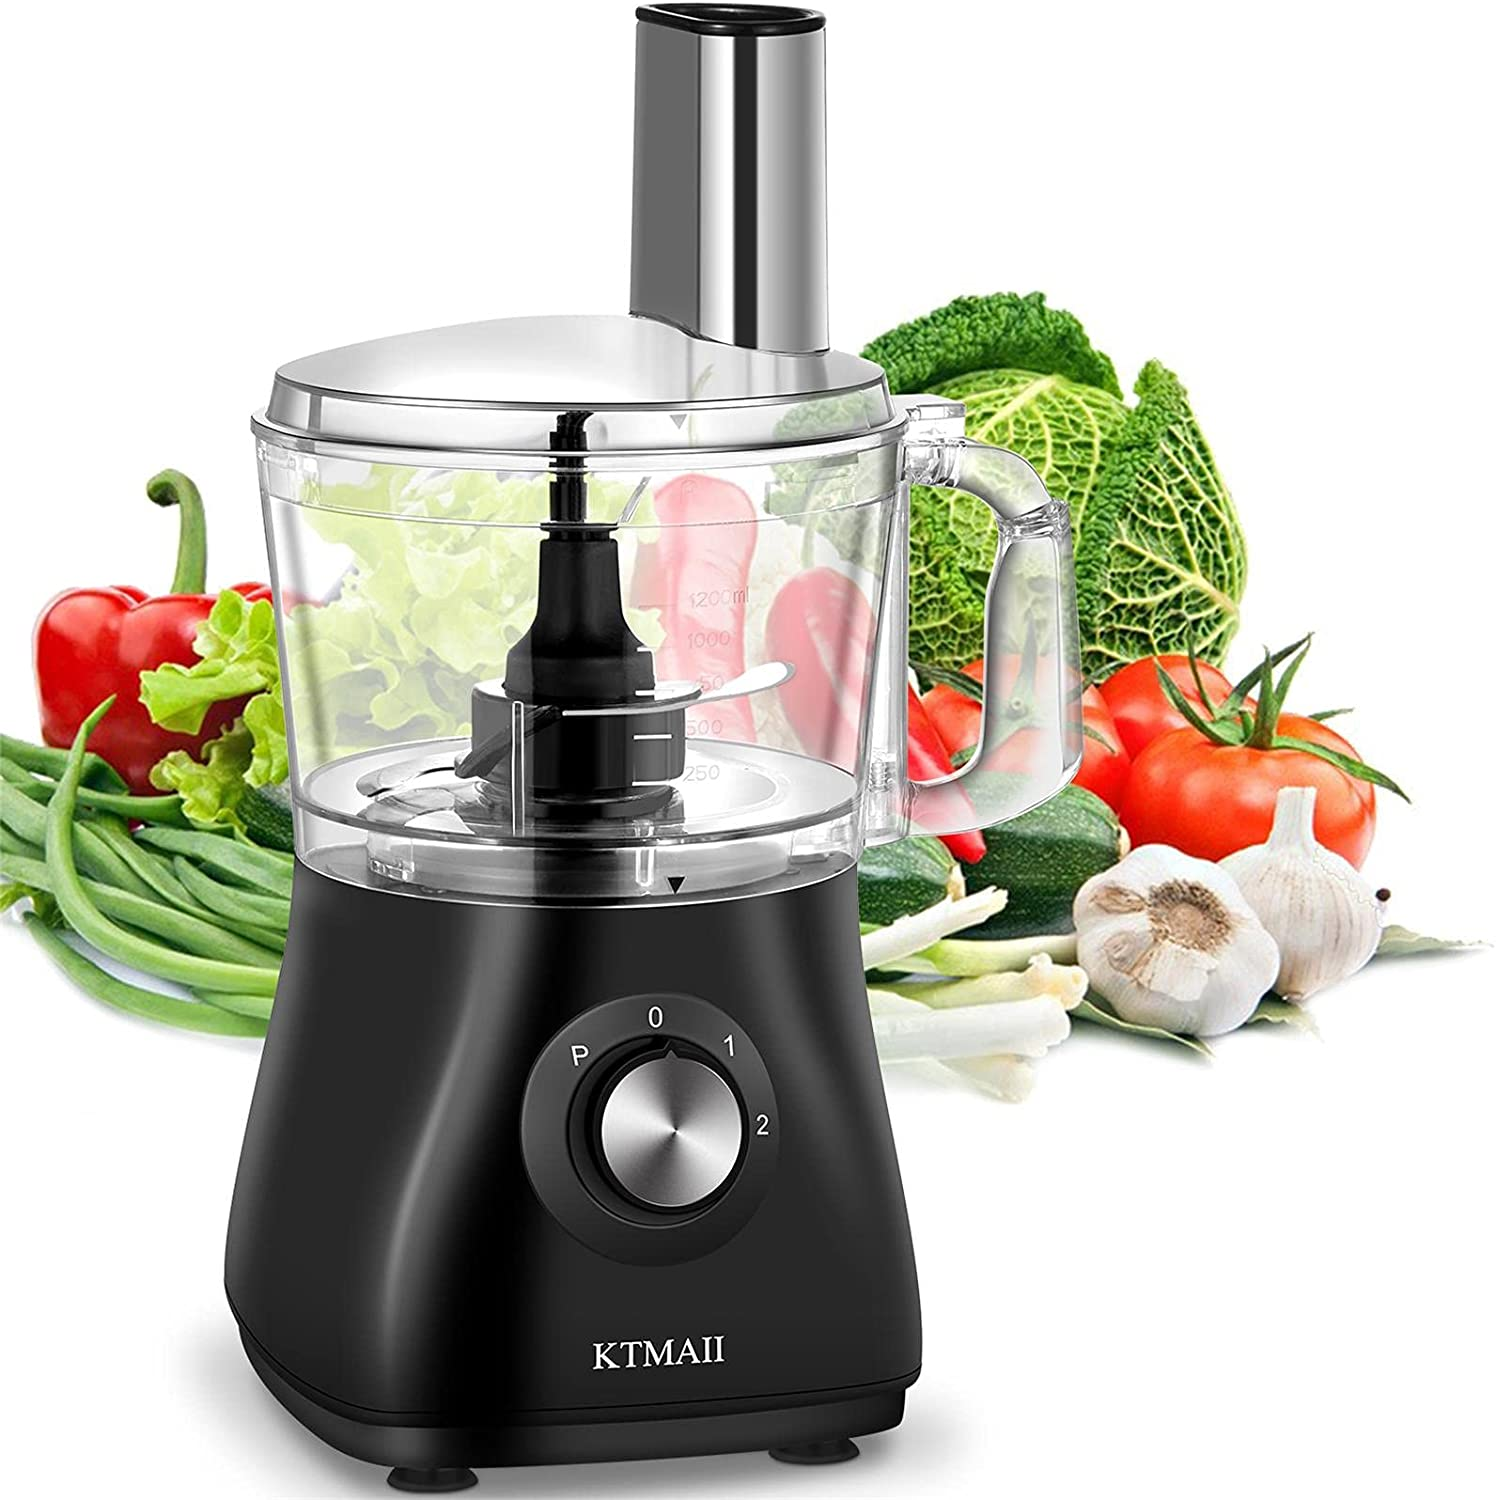 KTMAII 5 Cup Electric Food Processor & Vegetable Chopper with Bowl Scraper, Chopping, Kneading, Shredding, Slicing and Mashing Blades, 500 Watts, Black